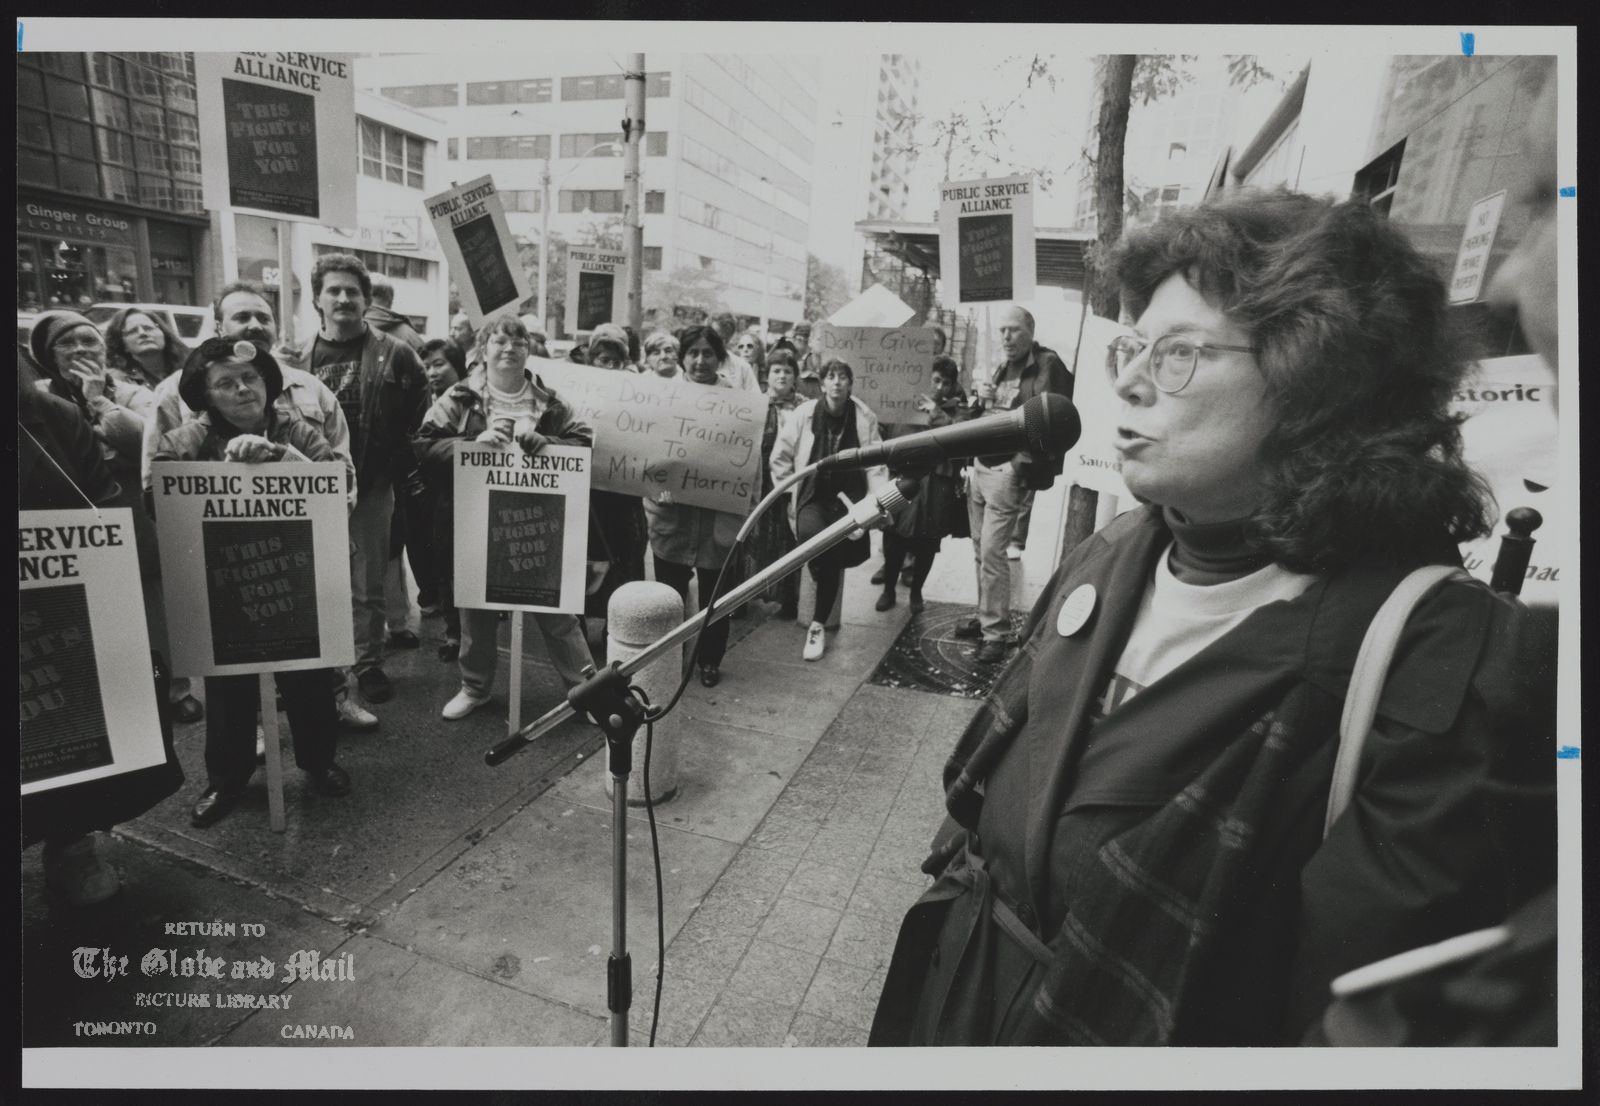 LINDA TORNEY LABOUR LEADER LABOUR LEADER LINDA TORNEY SPEAKS AT A RALLY IN TORONTO, A WARNING FOR THE DAYS OF ACTION PROTEST TAKING PLACE IN THE CITY OVER THE NEXT TWO DAYS.